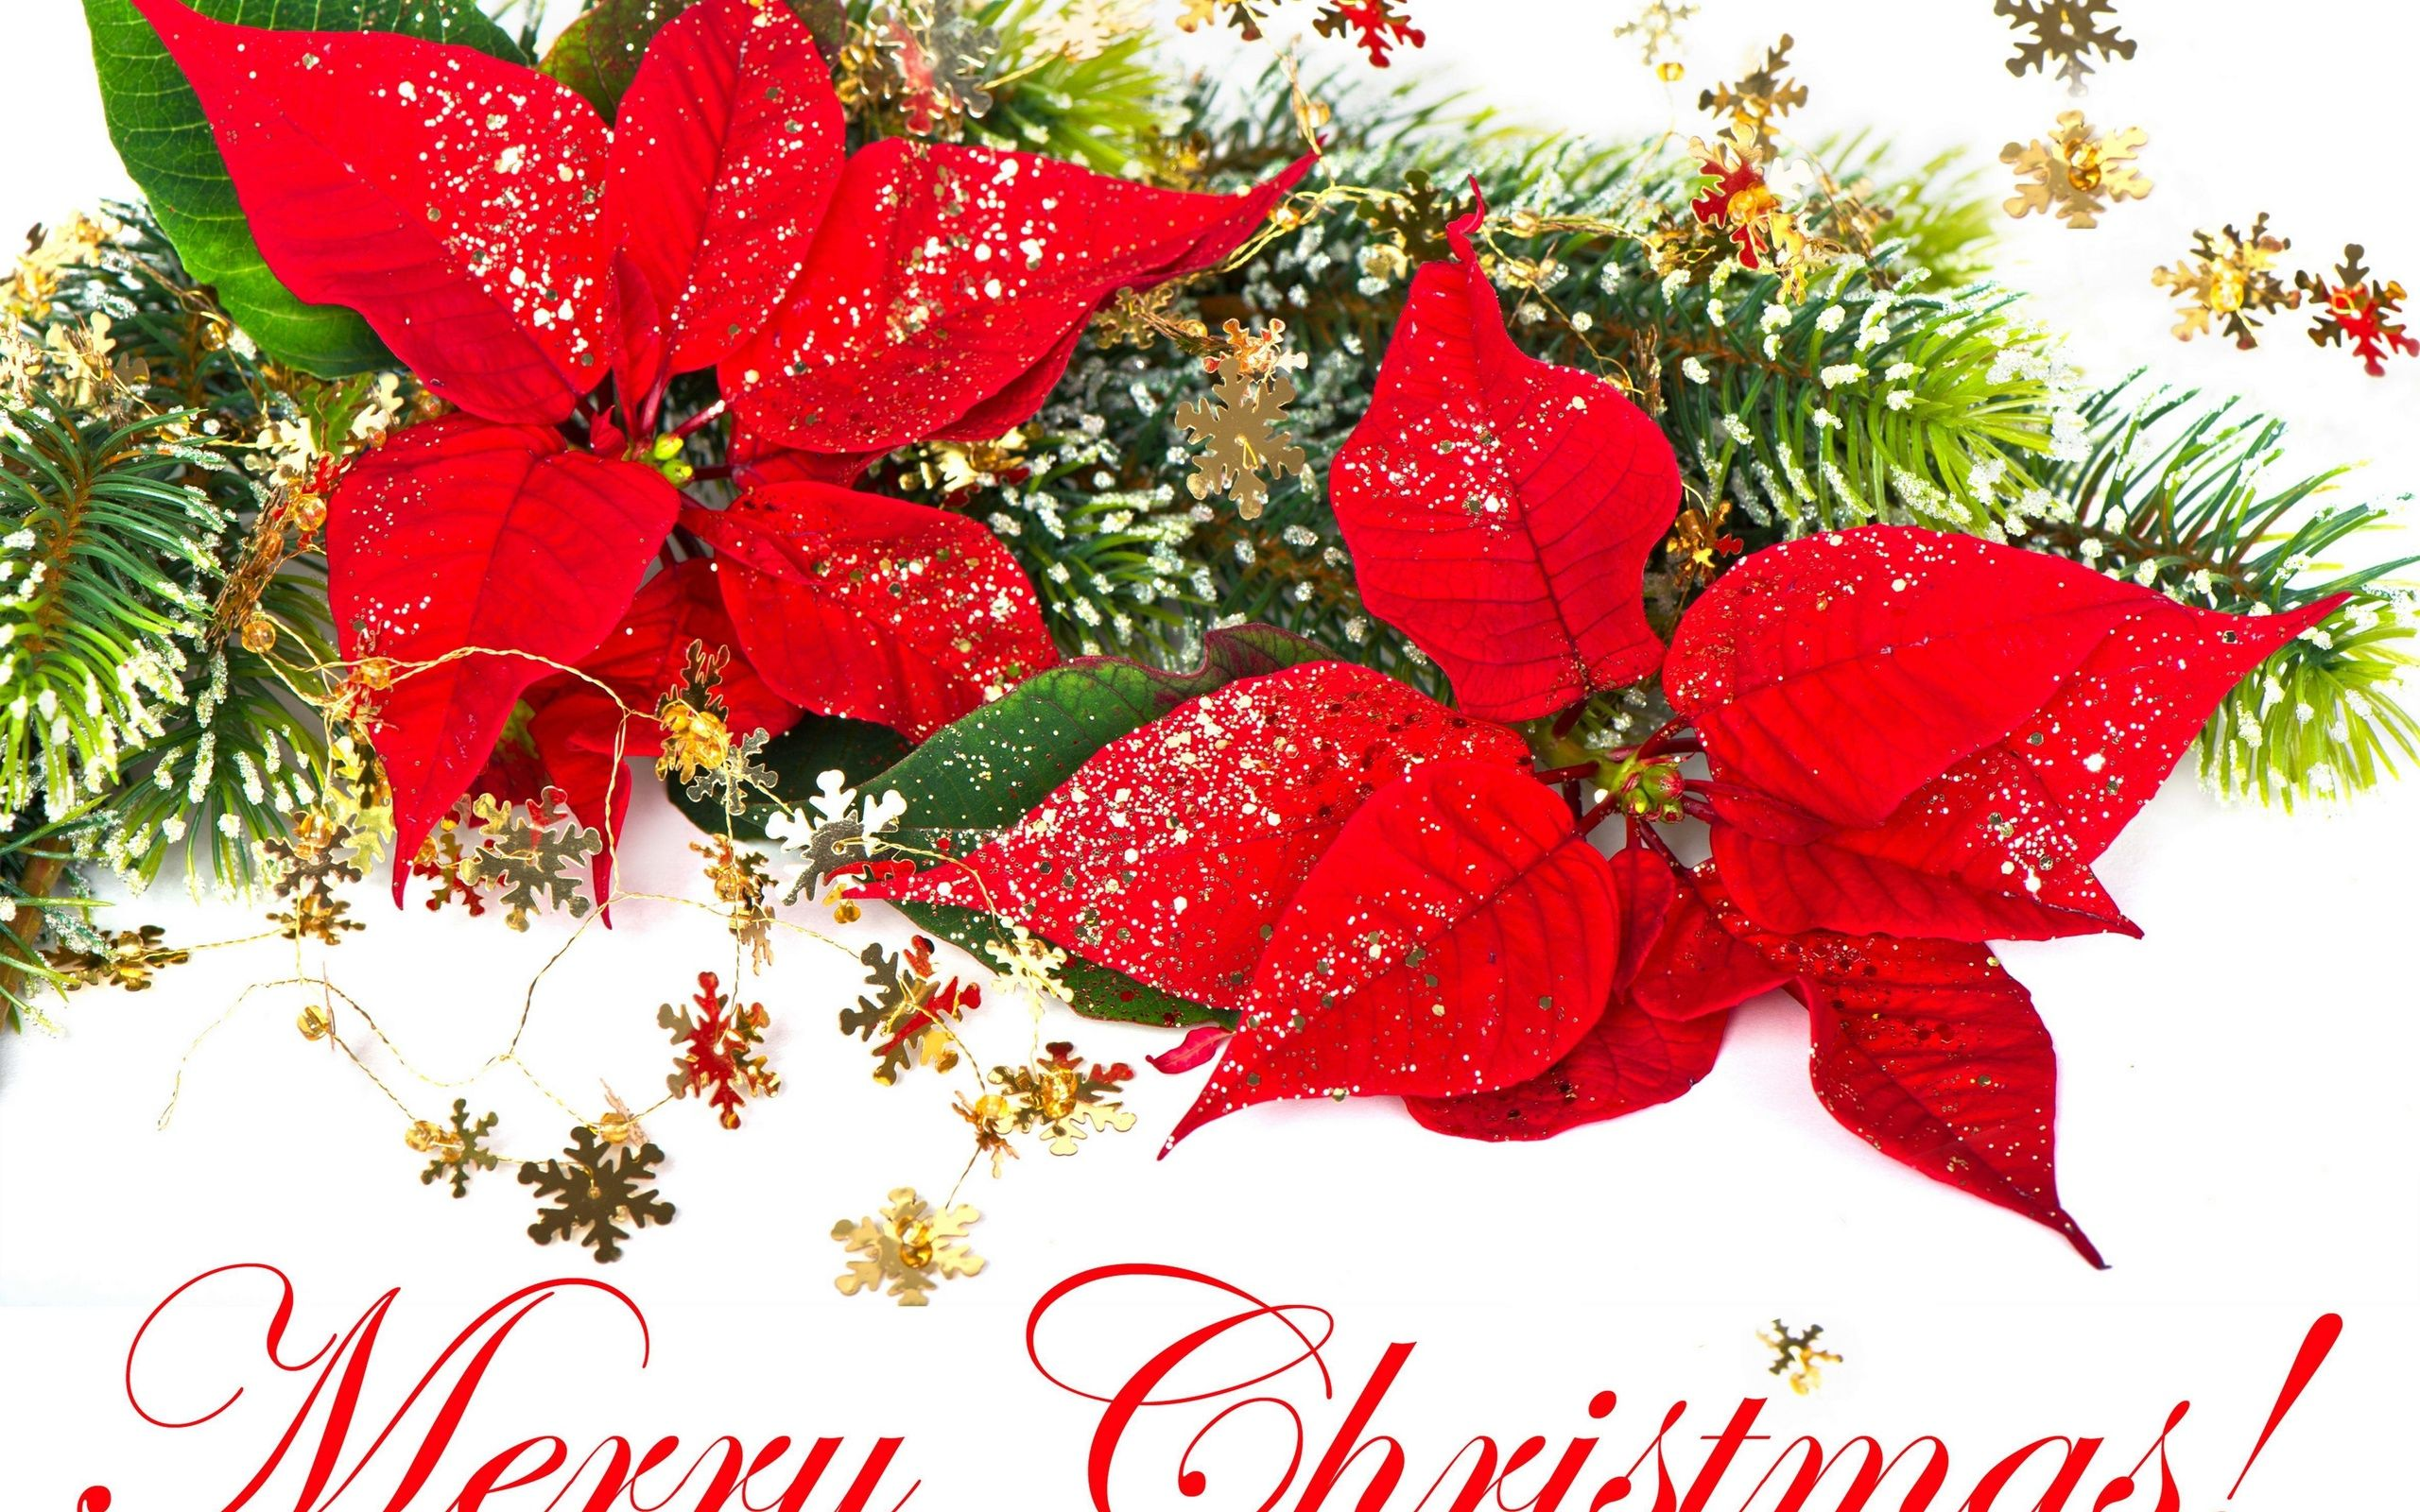 2560x1600 Best 41+ Christmas Poinsettia Backgrounds for Desktop on ...